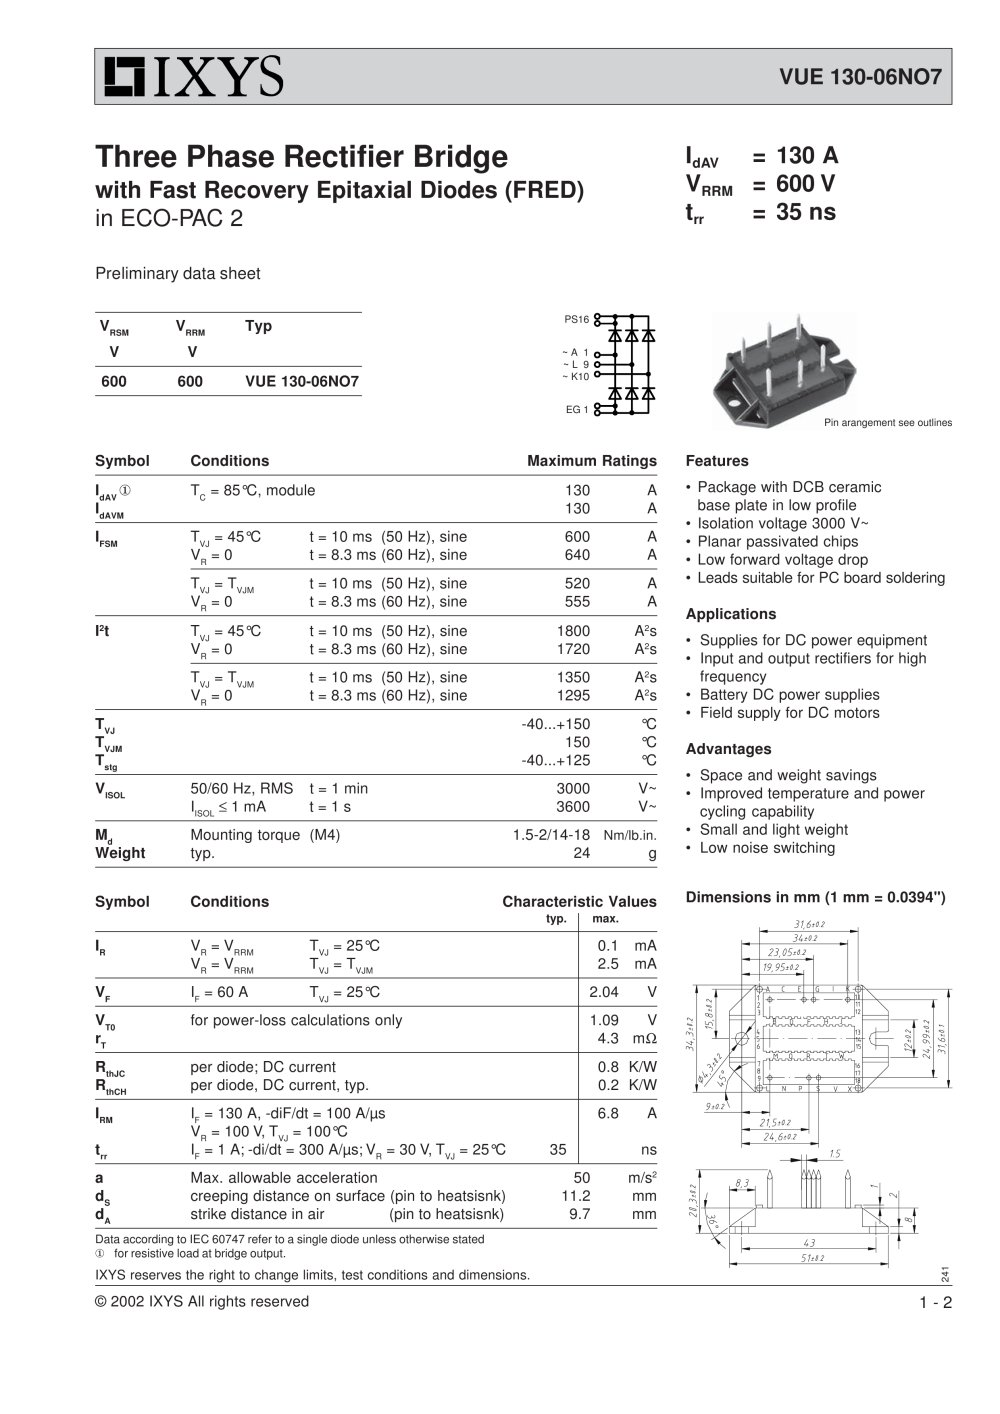 Three phase rectifier bridge with fast recovery epitaxial diodes three phase rectifier bridge with fast recovery epitaxial diodes fred 1 2 pages biocorpaavc